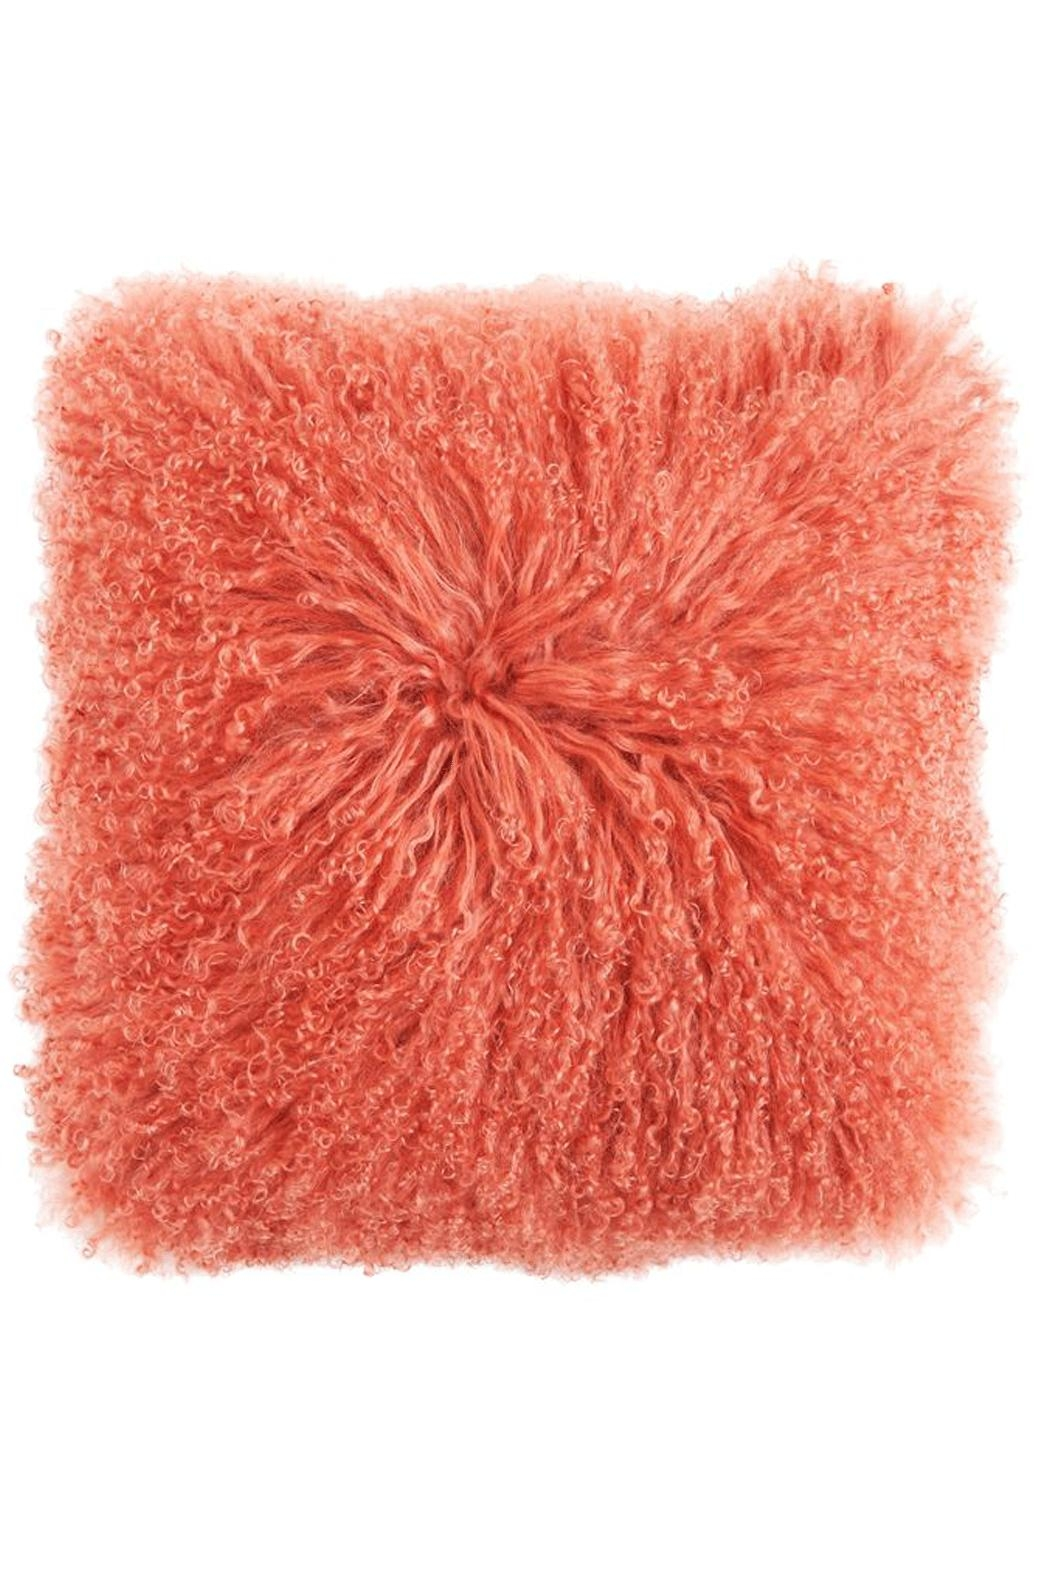 RENDR Coral Fur Pillow - Main Image